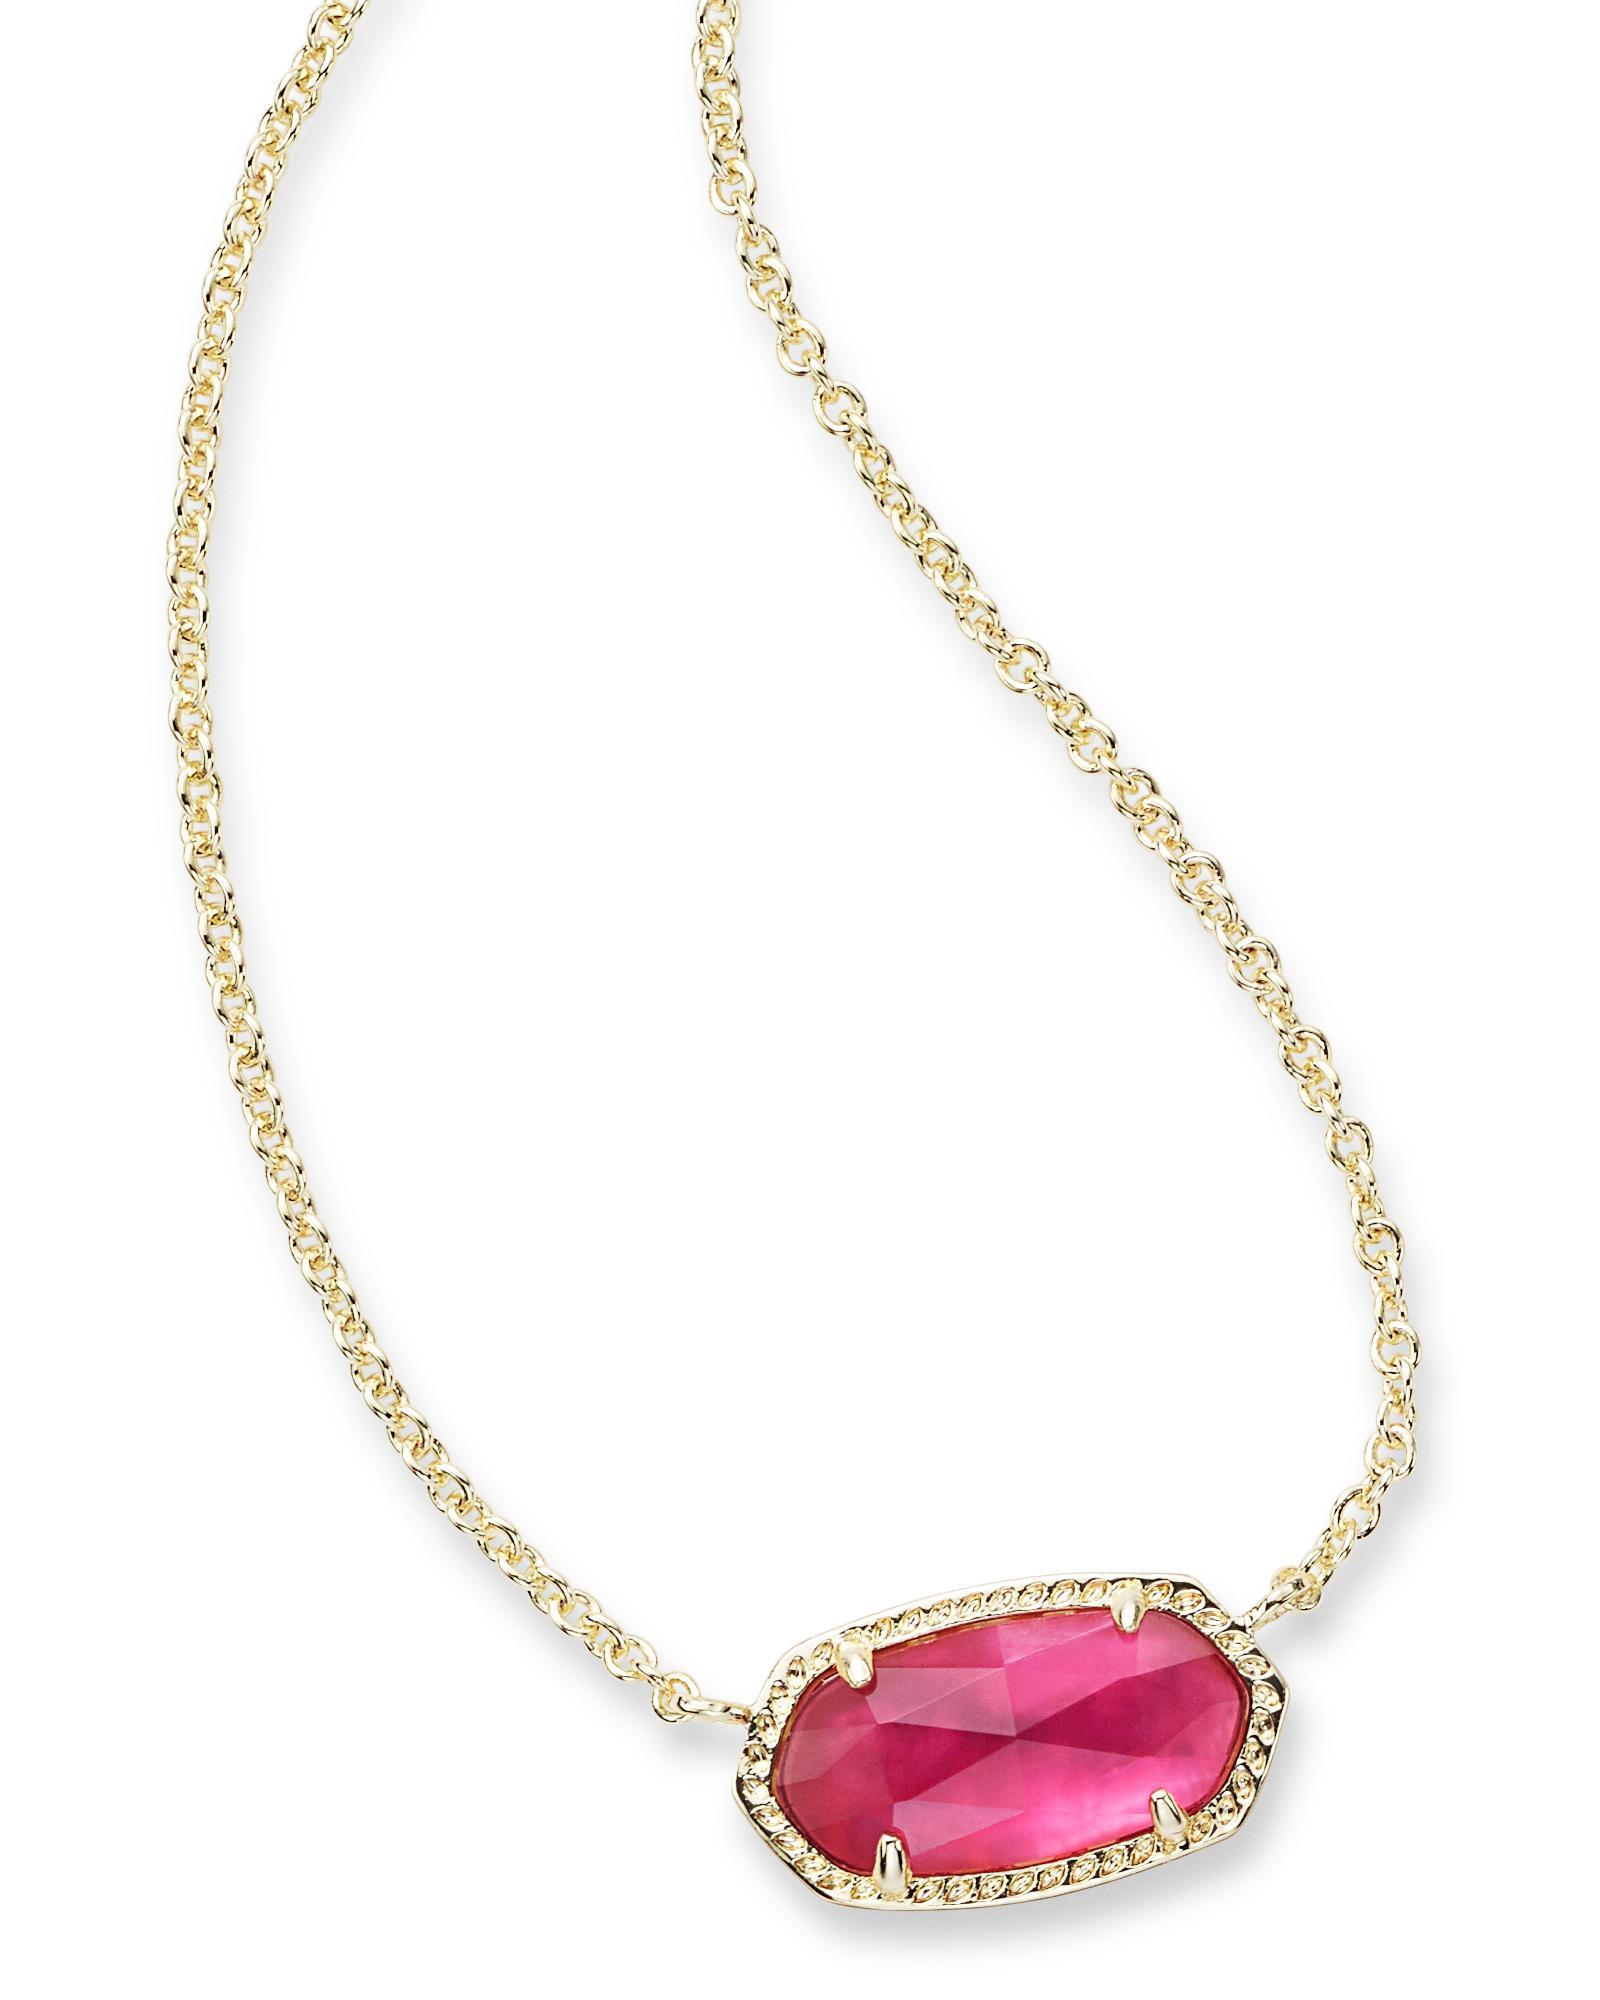 NWT Kendra Scott Yazmin in Berry illusion /& Gold Long Necklace New